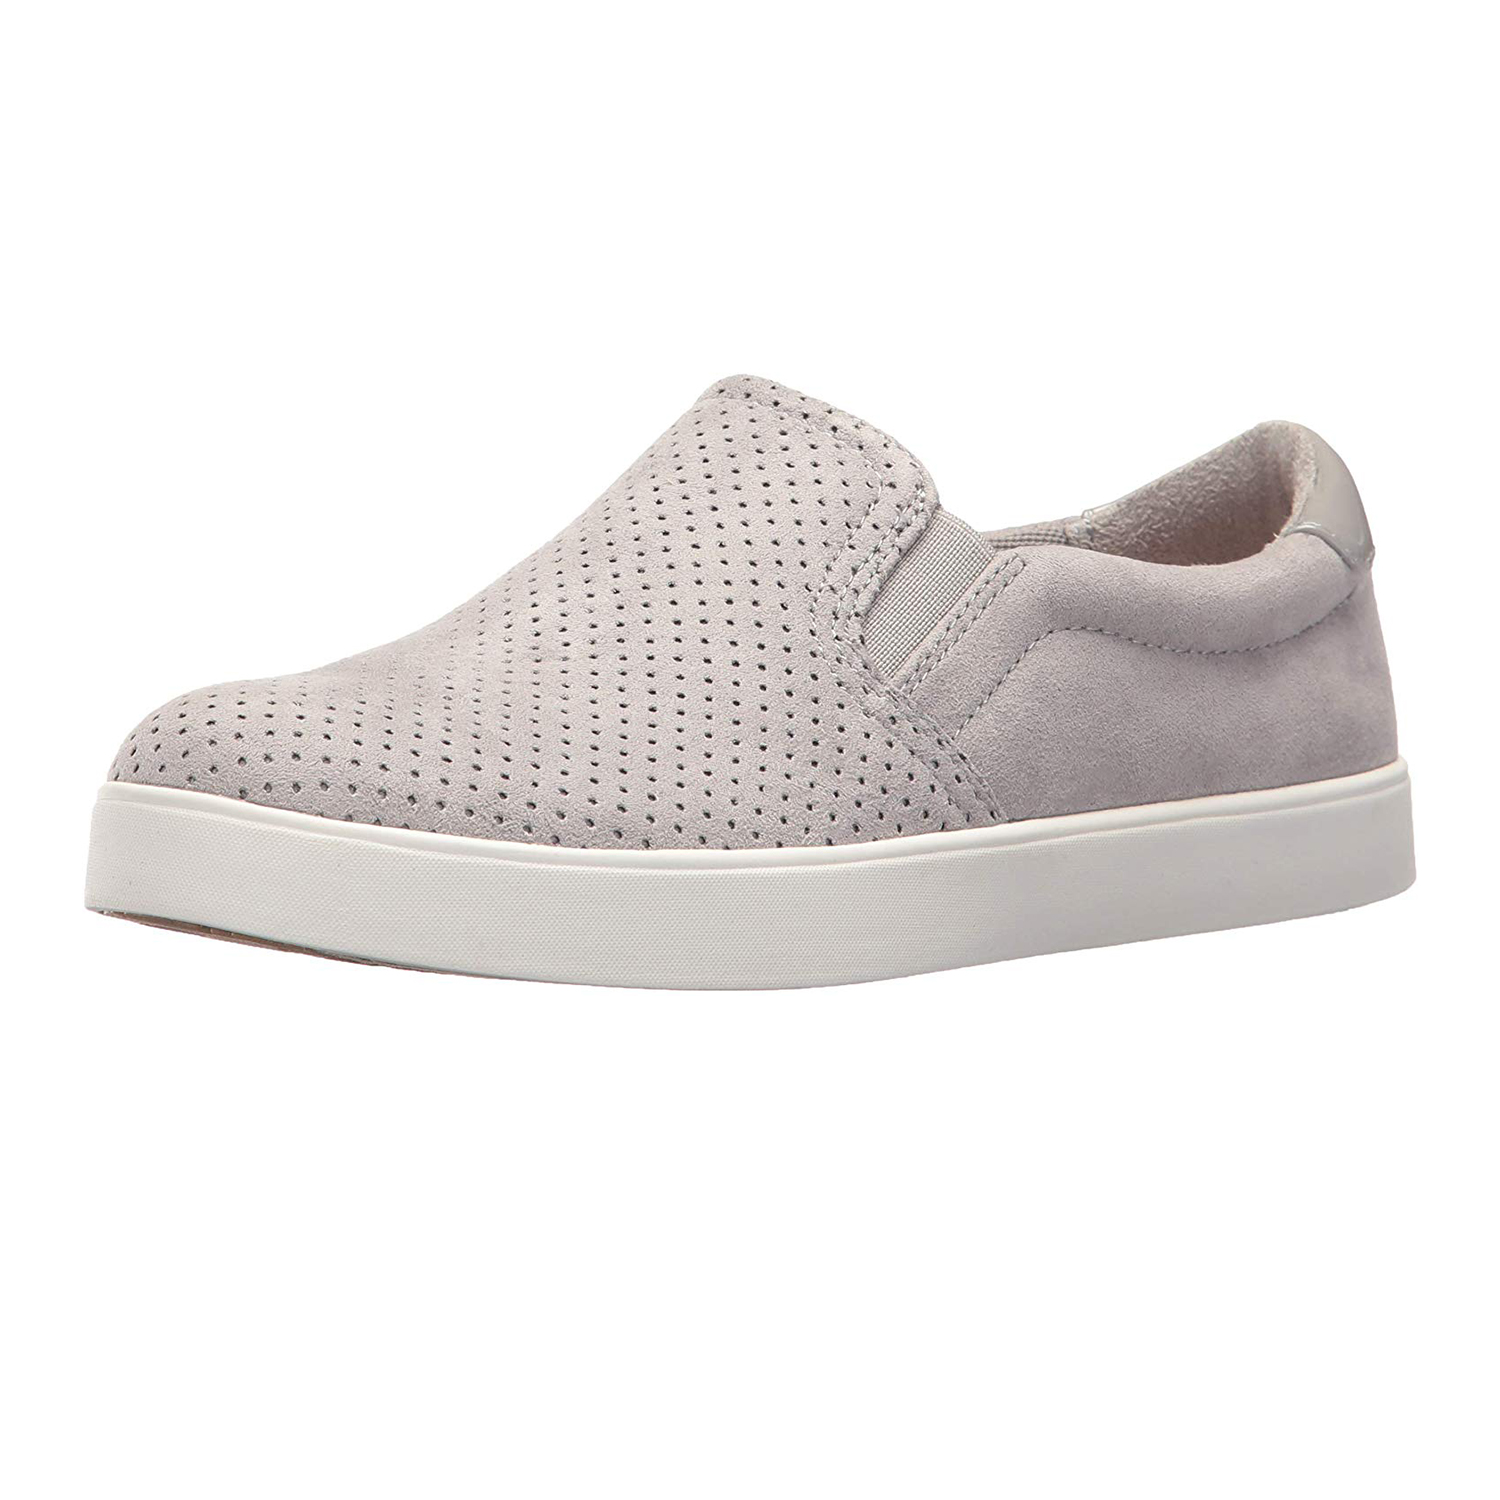 Dr. Scholl's Madison Fashion Sneaker